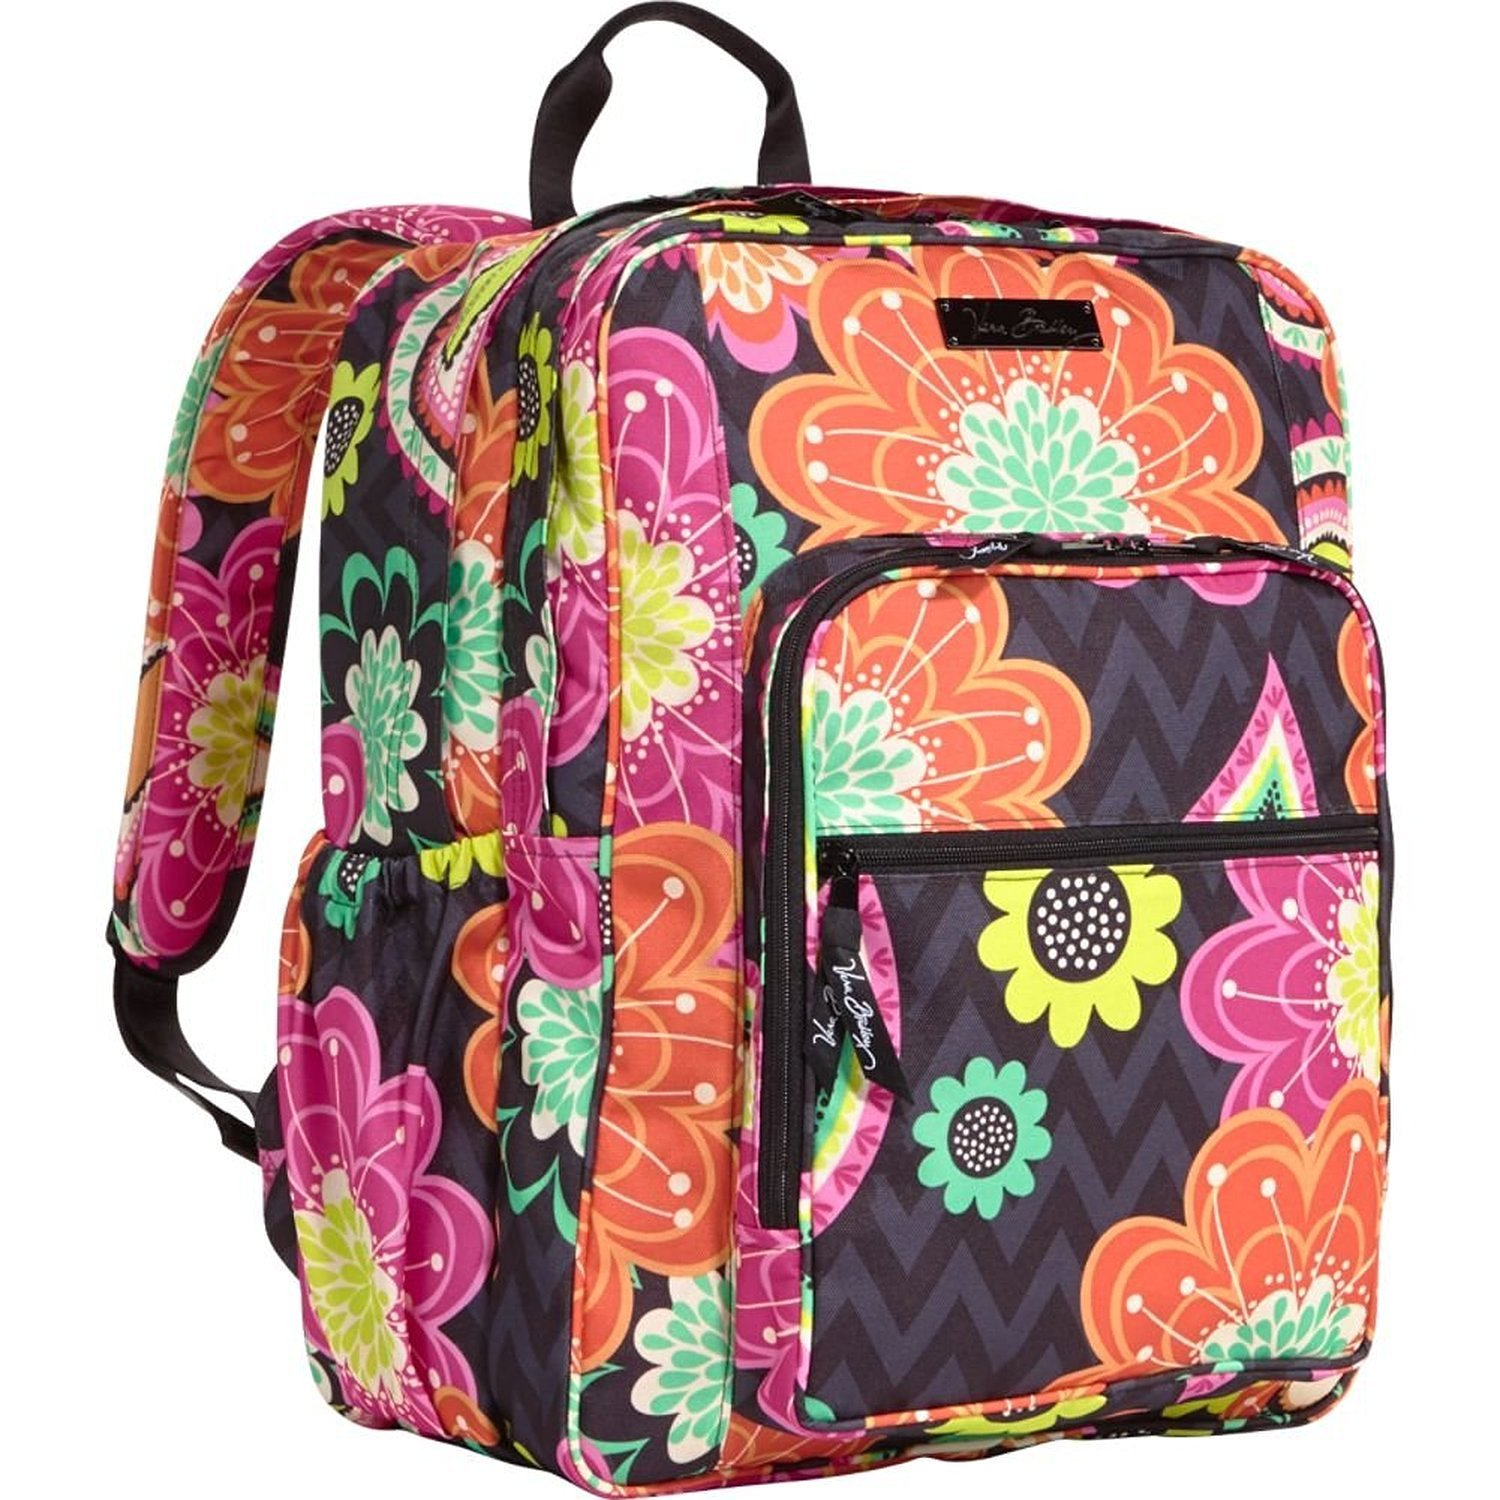 abf09f9f1fe9 Buy Vera Bradley Lighten Up Large Backpack (Ziggy Zinnia) in Cheap ...